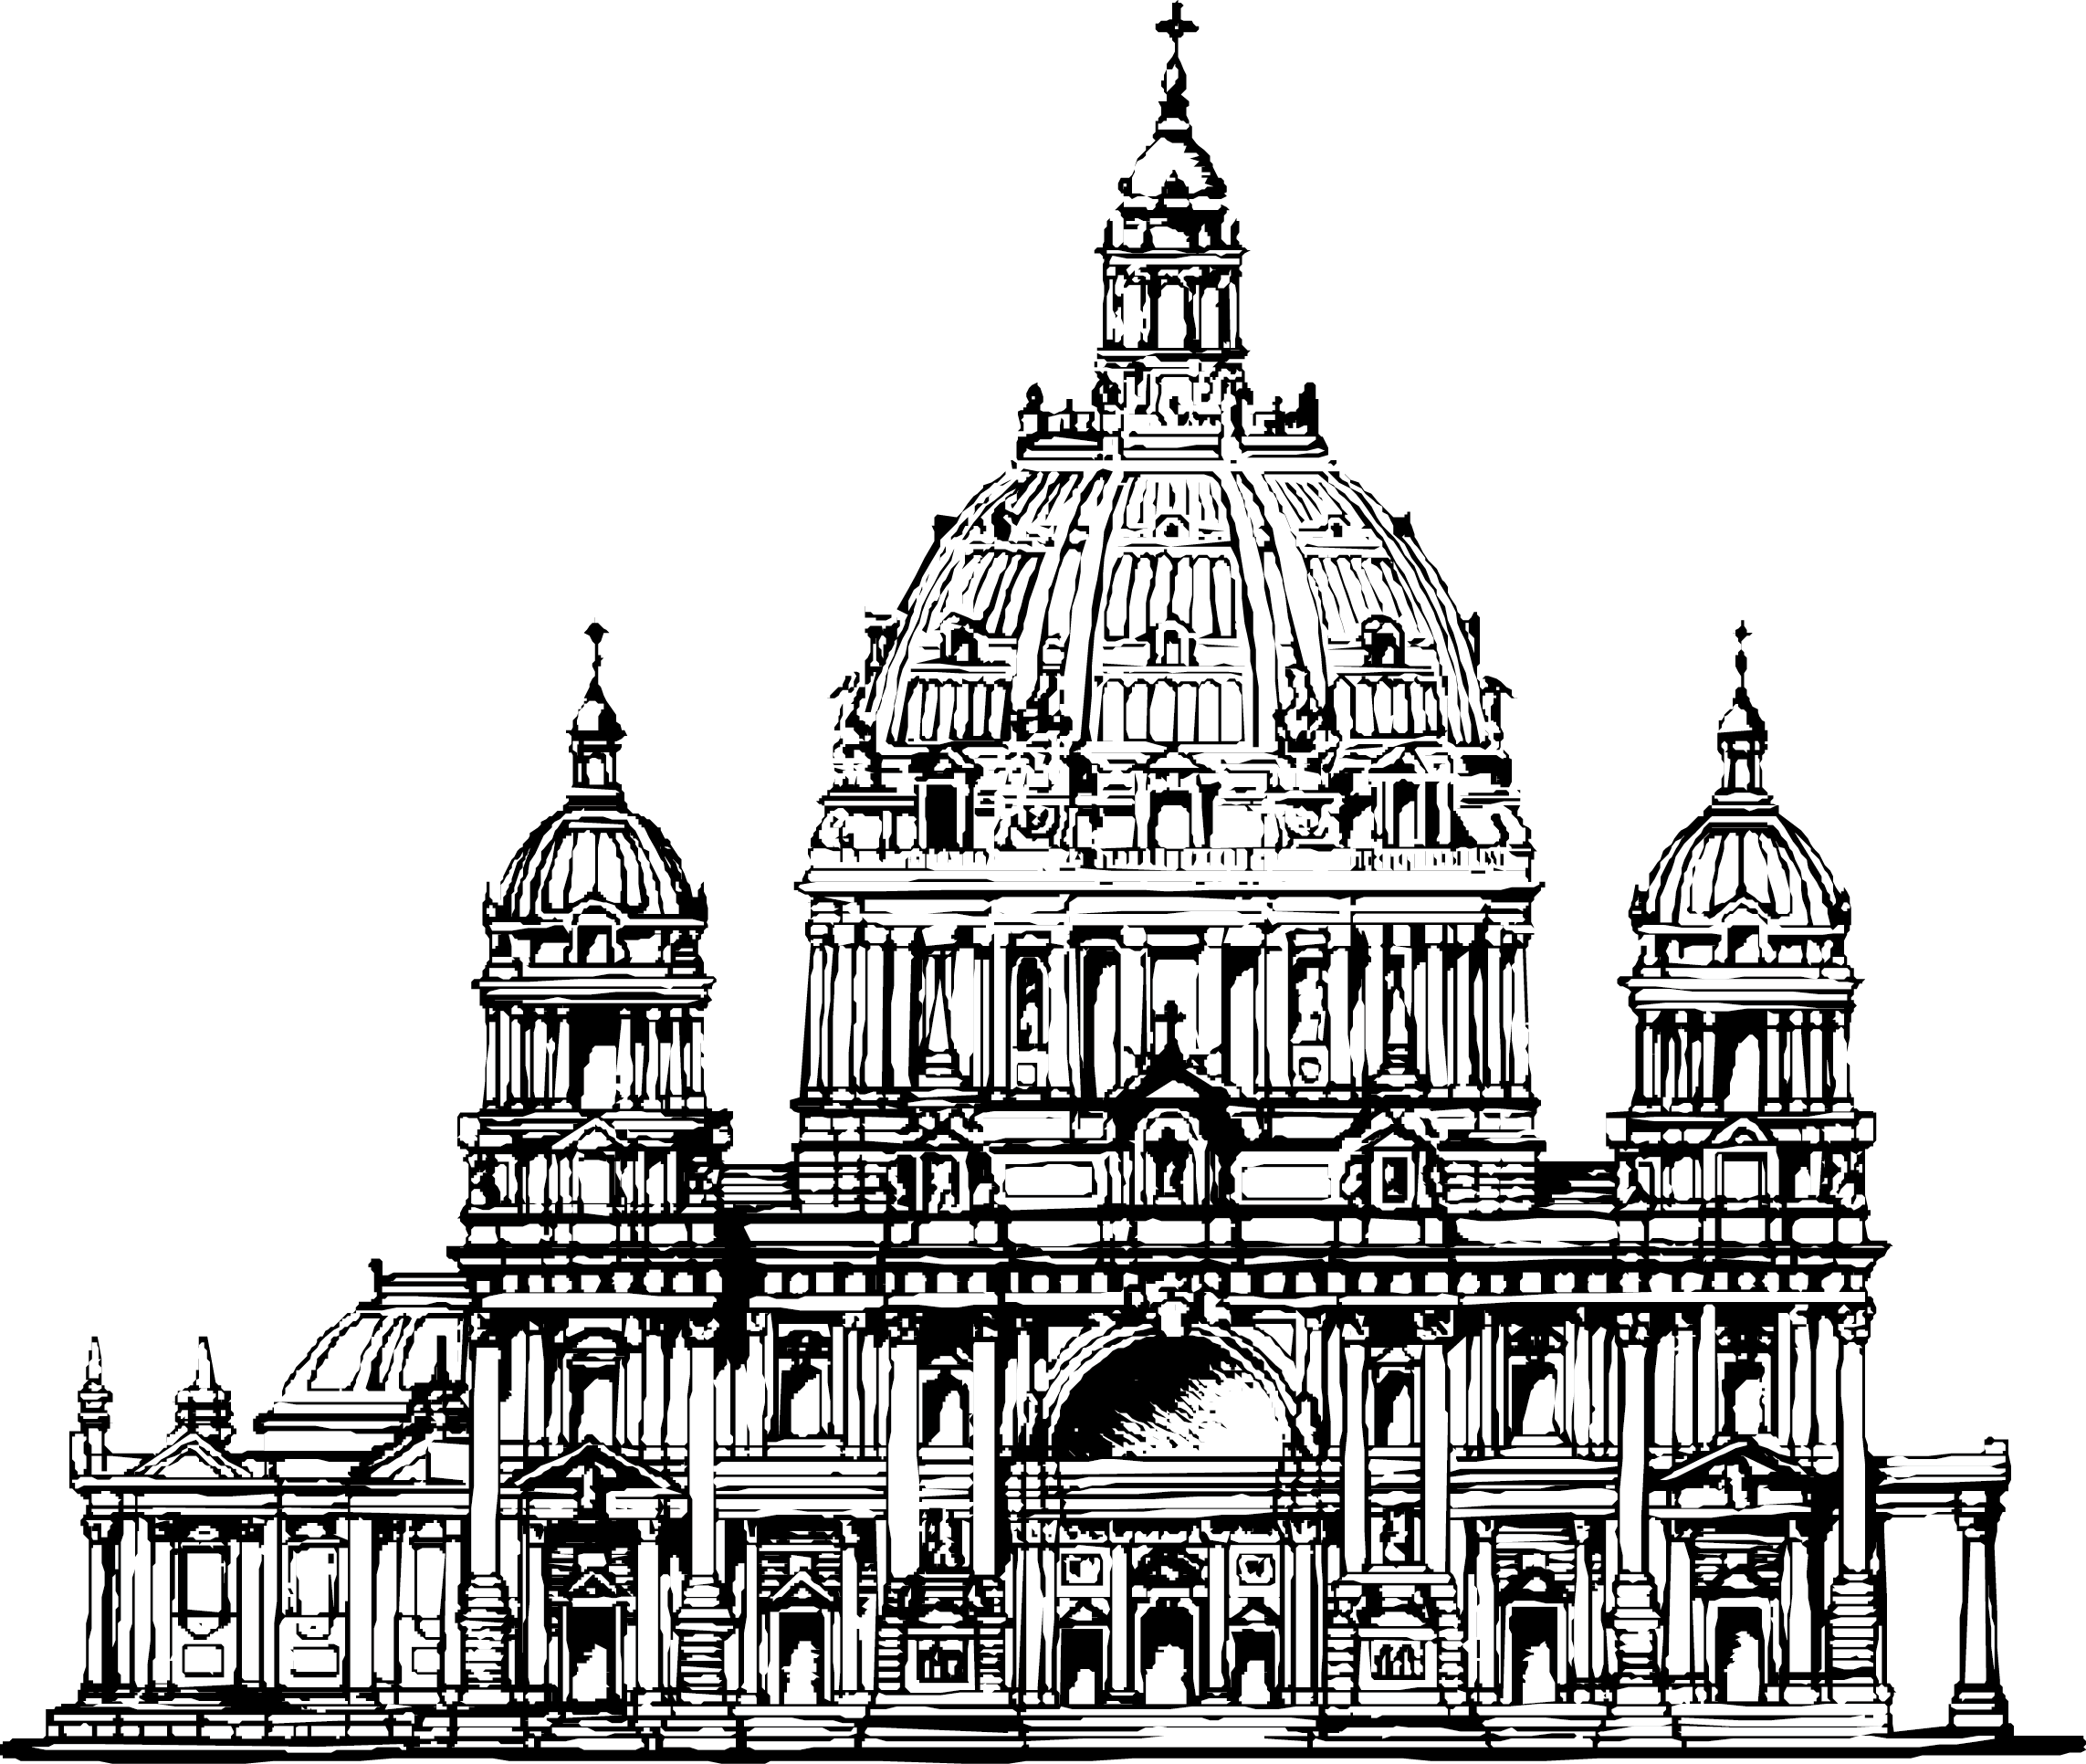 Berlin cathedral xara architecture. Palace clipart old palace